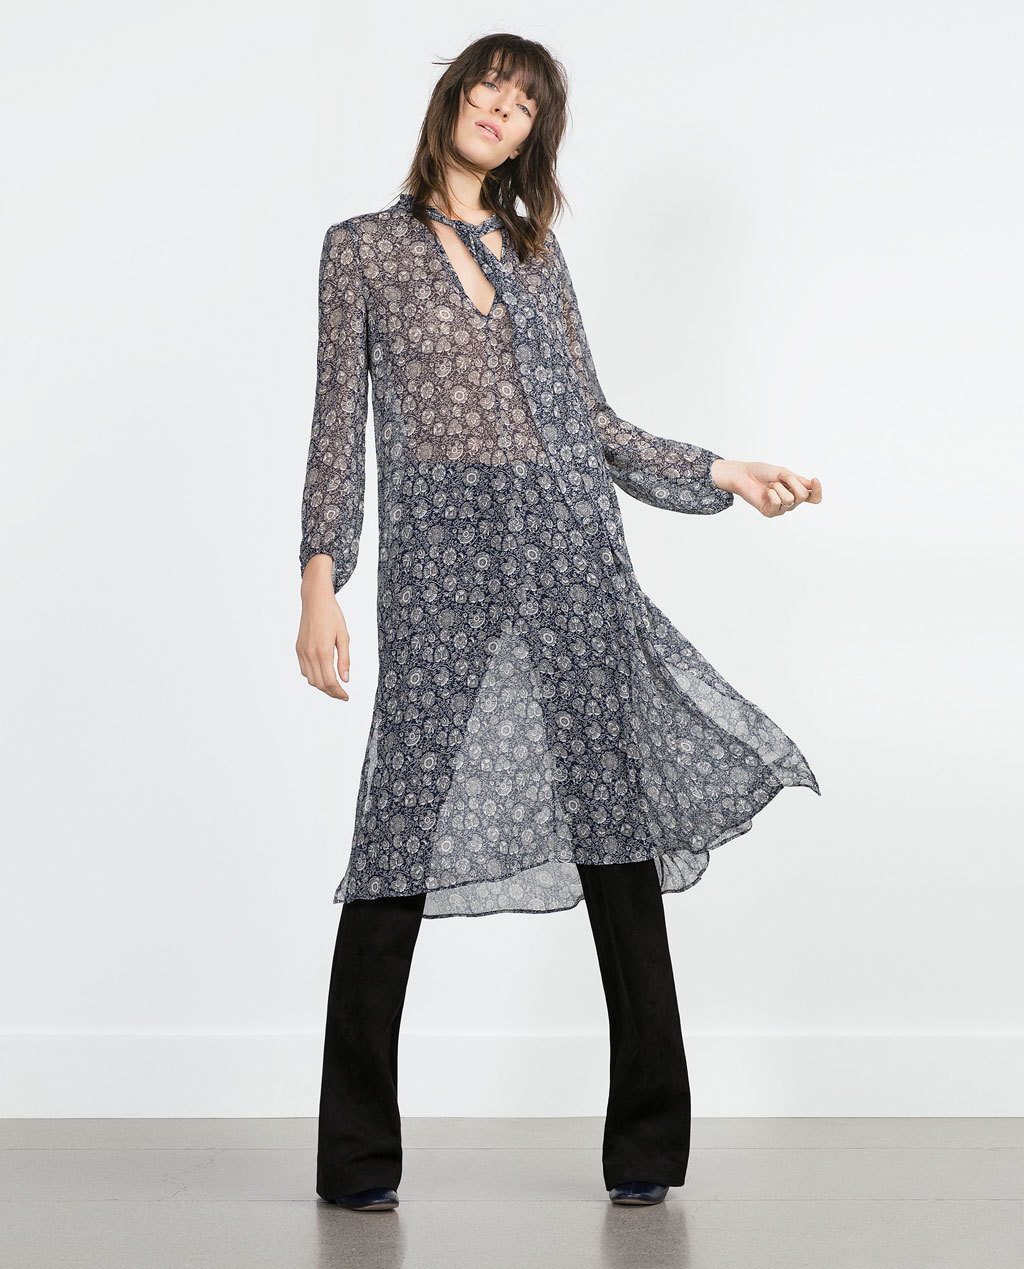 Long Tunic - style: tunic; length: below the knee; neckline: low v-neck; sleeve style: bell sleeve; fit: loose; predominant colour: light grey; occasions: casual; sleeve length: long sleeve; texture group: sheer fabrics/chiffon/organza etc.; pattern: patterned/print; season: a/w 2015; trends: folky 70s; wardrobe: highlight